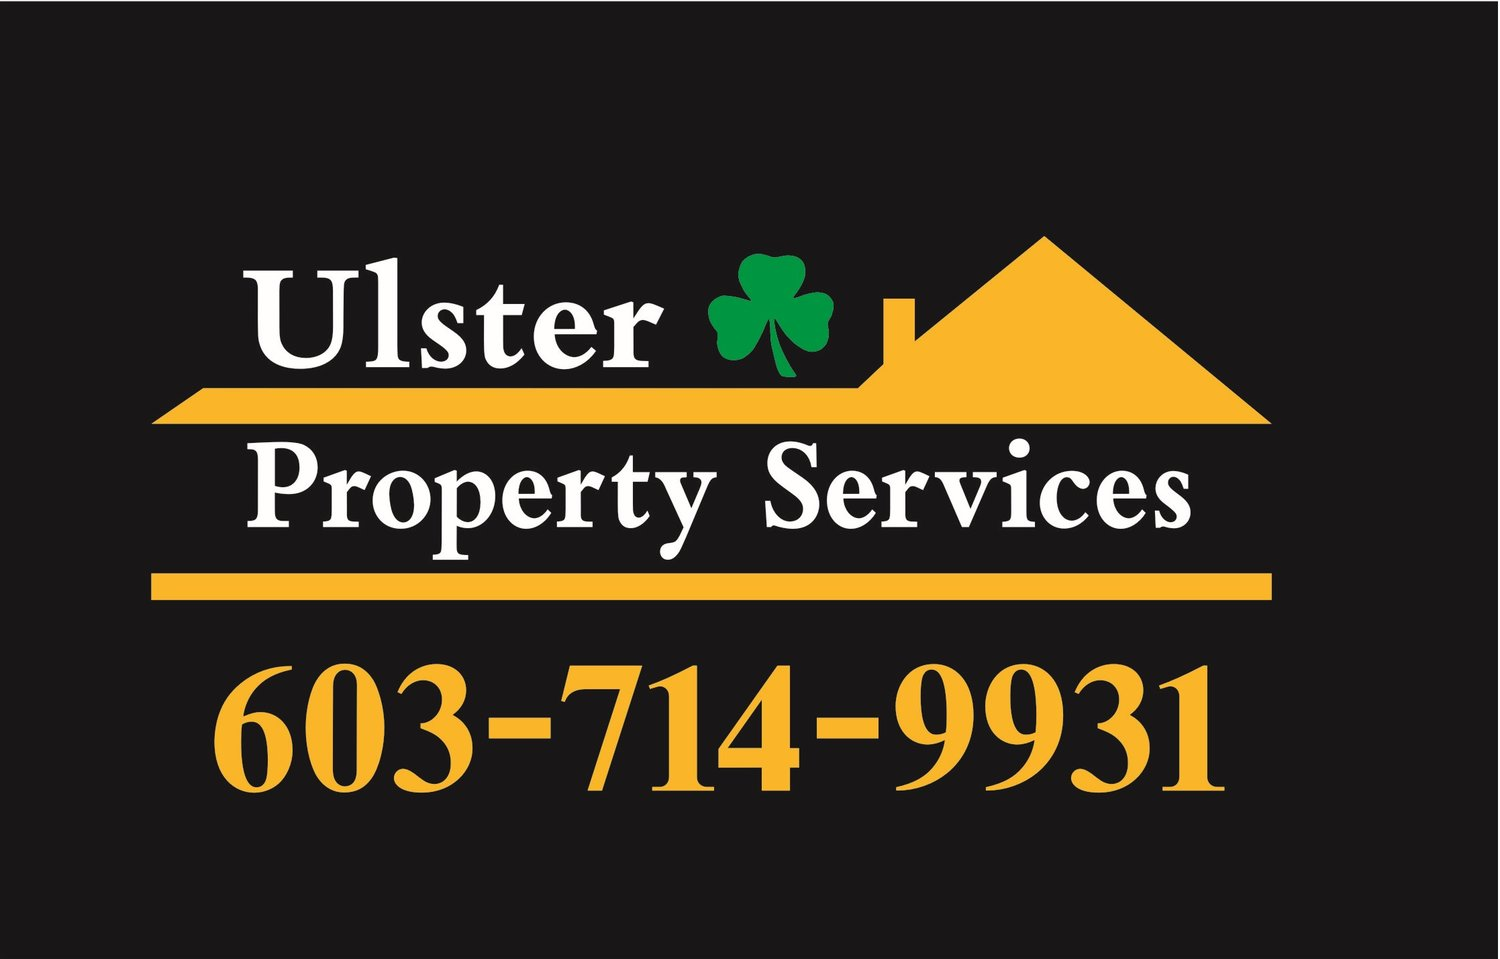 Ulster Property Services